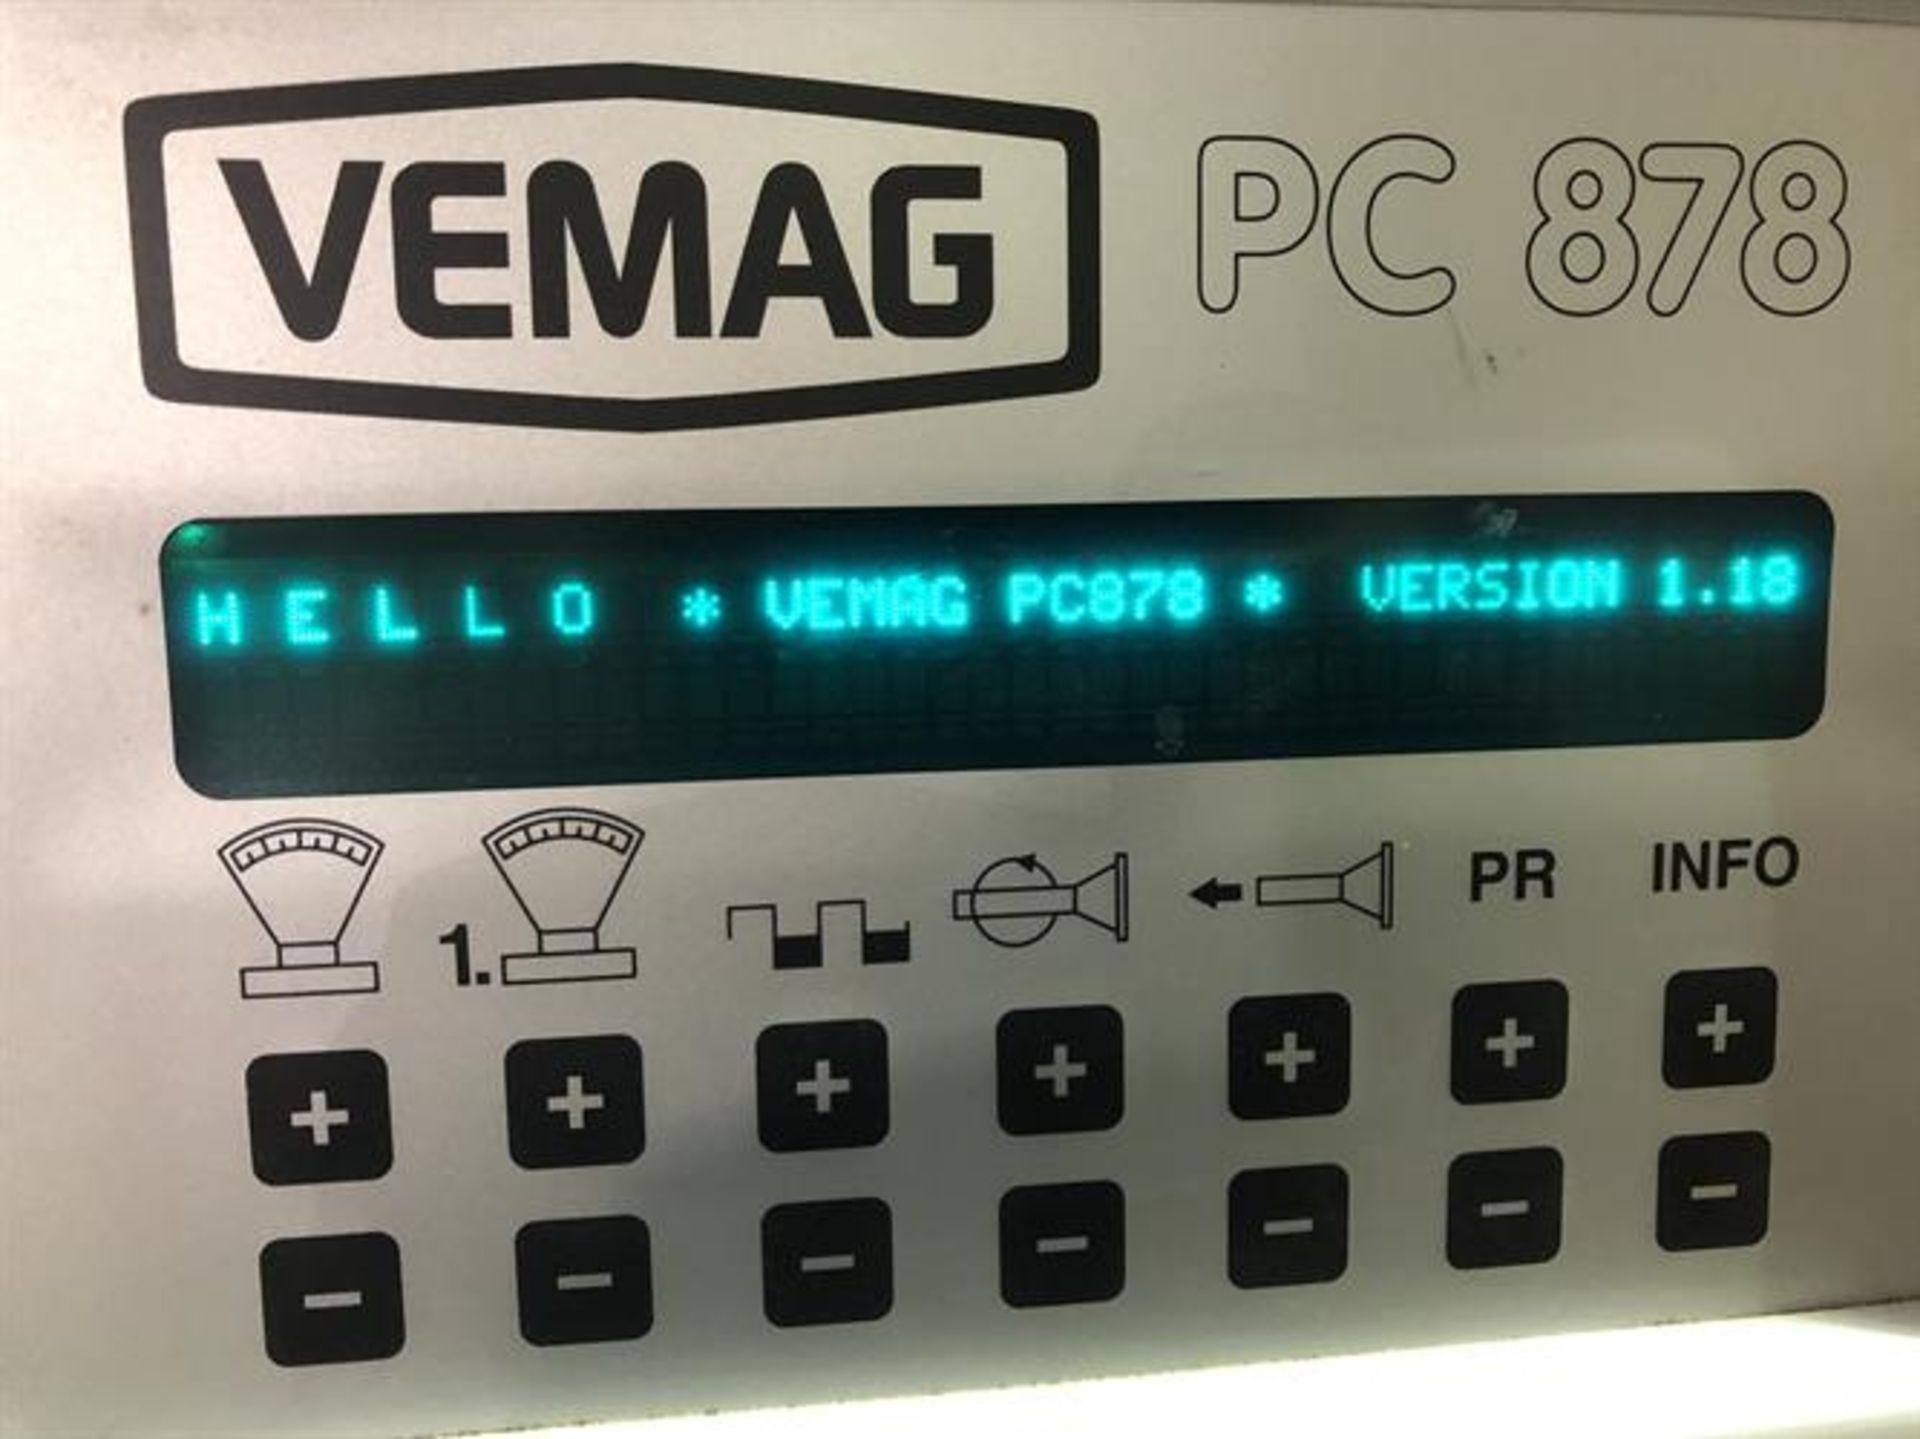 Vemag Robot 500 Stainless Steel Vacuum Stuffer - Machine has been completely reconditioned - PC - Image 11 of 31